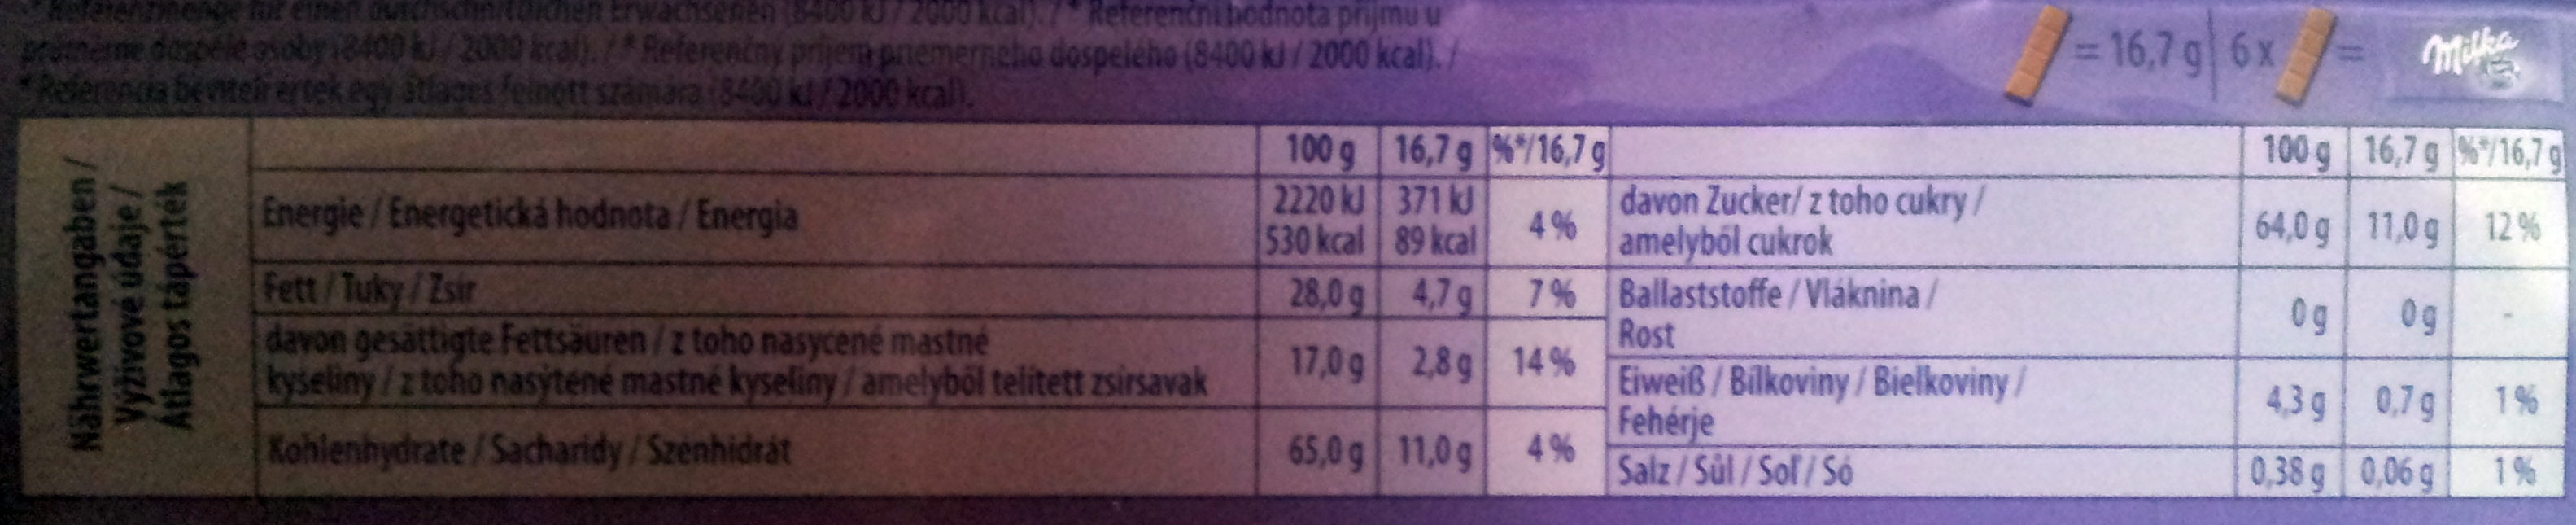 White Chocolate Bar - Nutrition facts